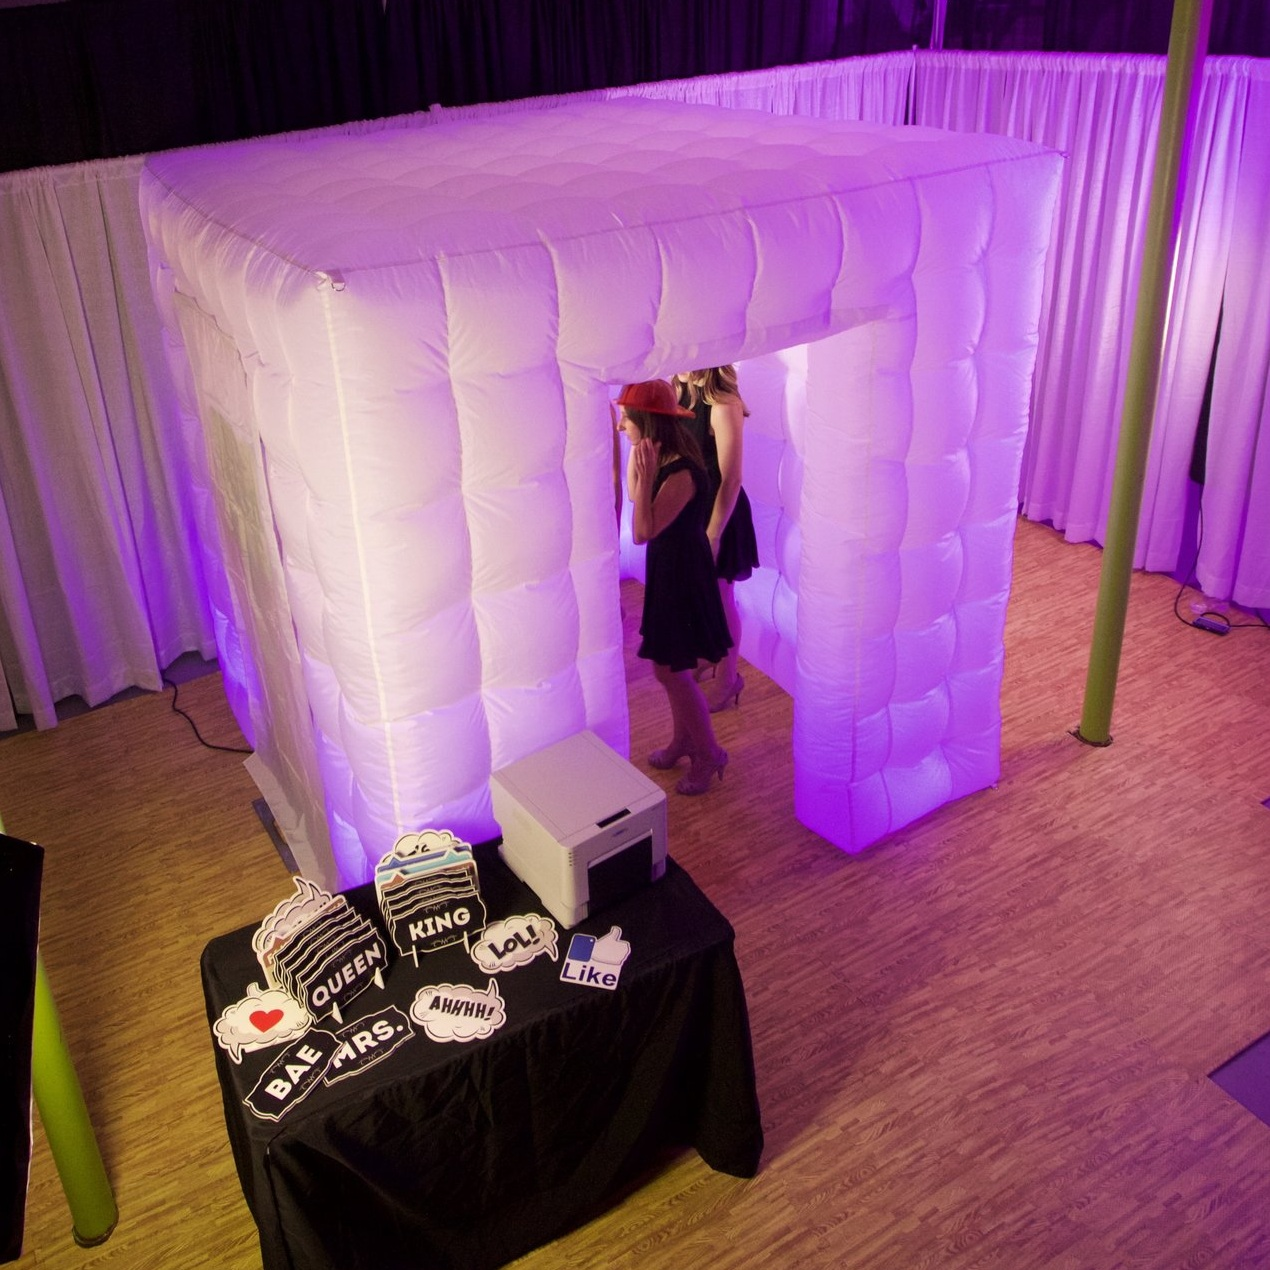 The Inflatable Booth Enclosure